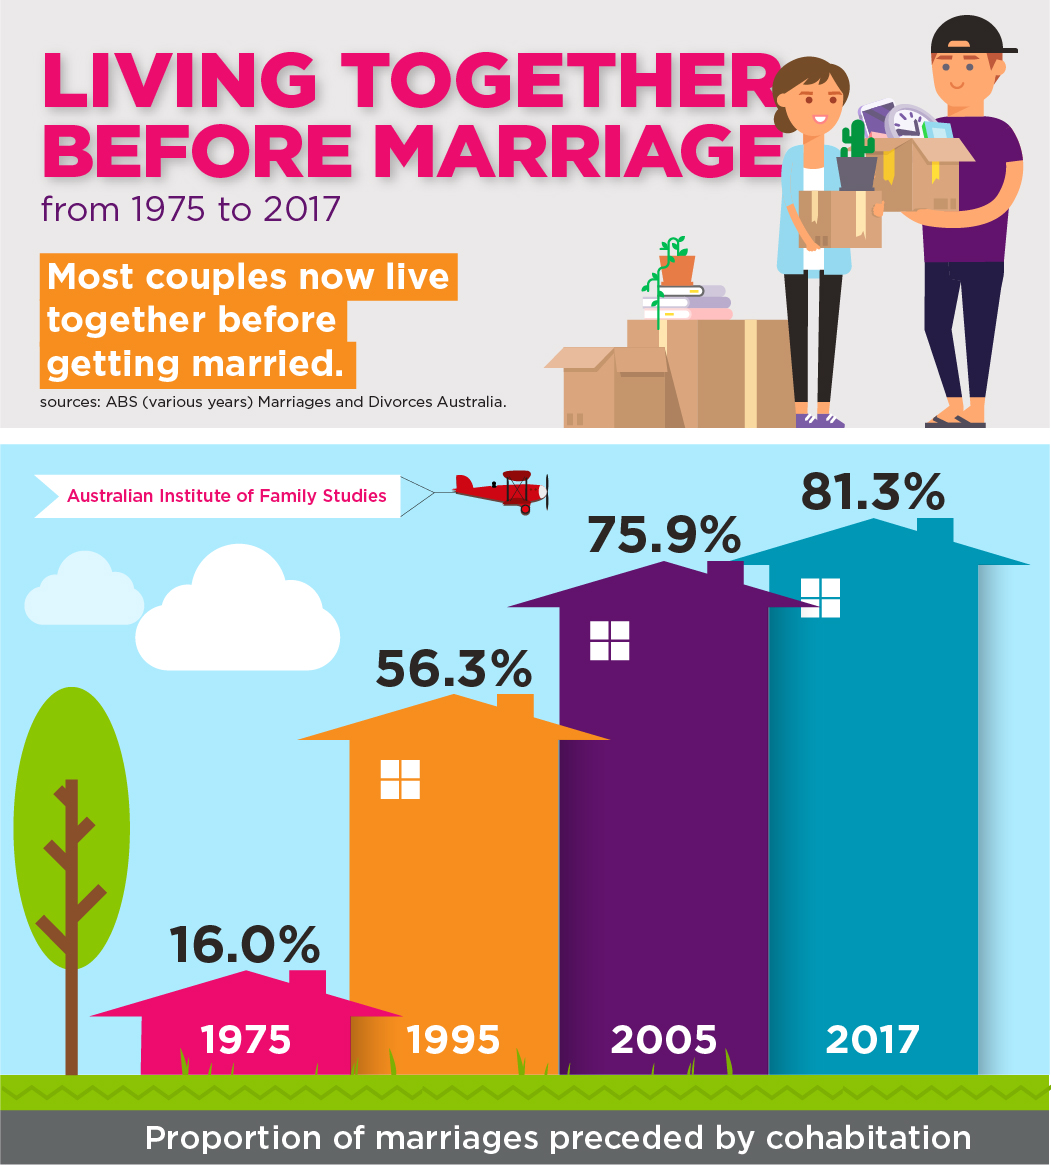 Figure 2: Infographic showing the percentage of couples living together before marriage between 1970 and 2017